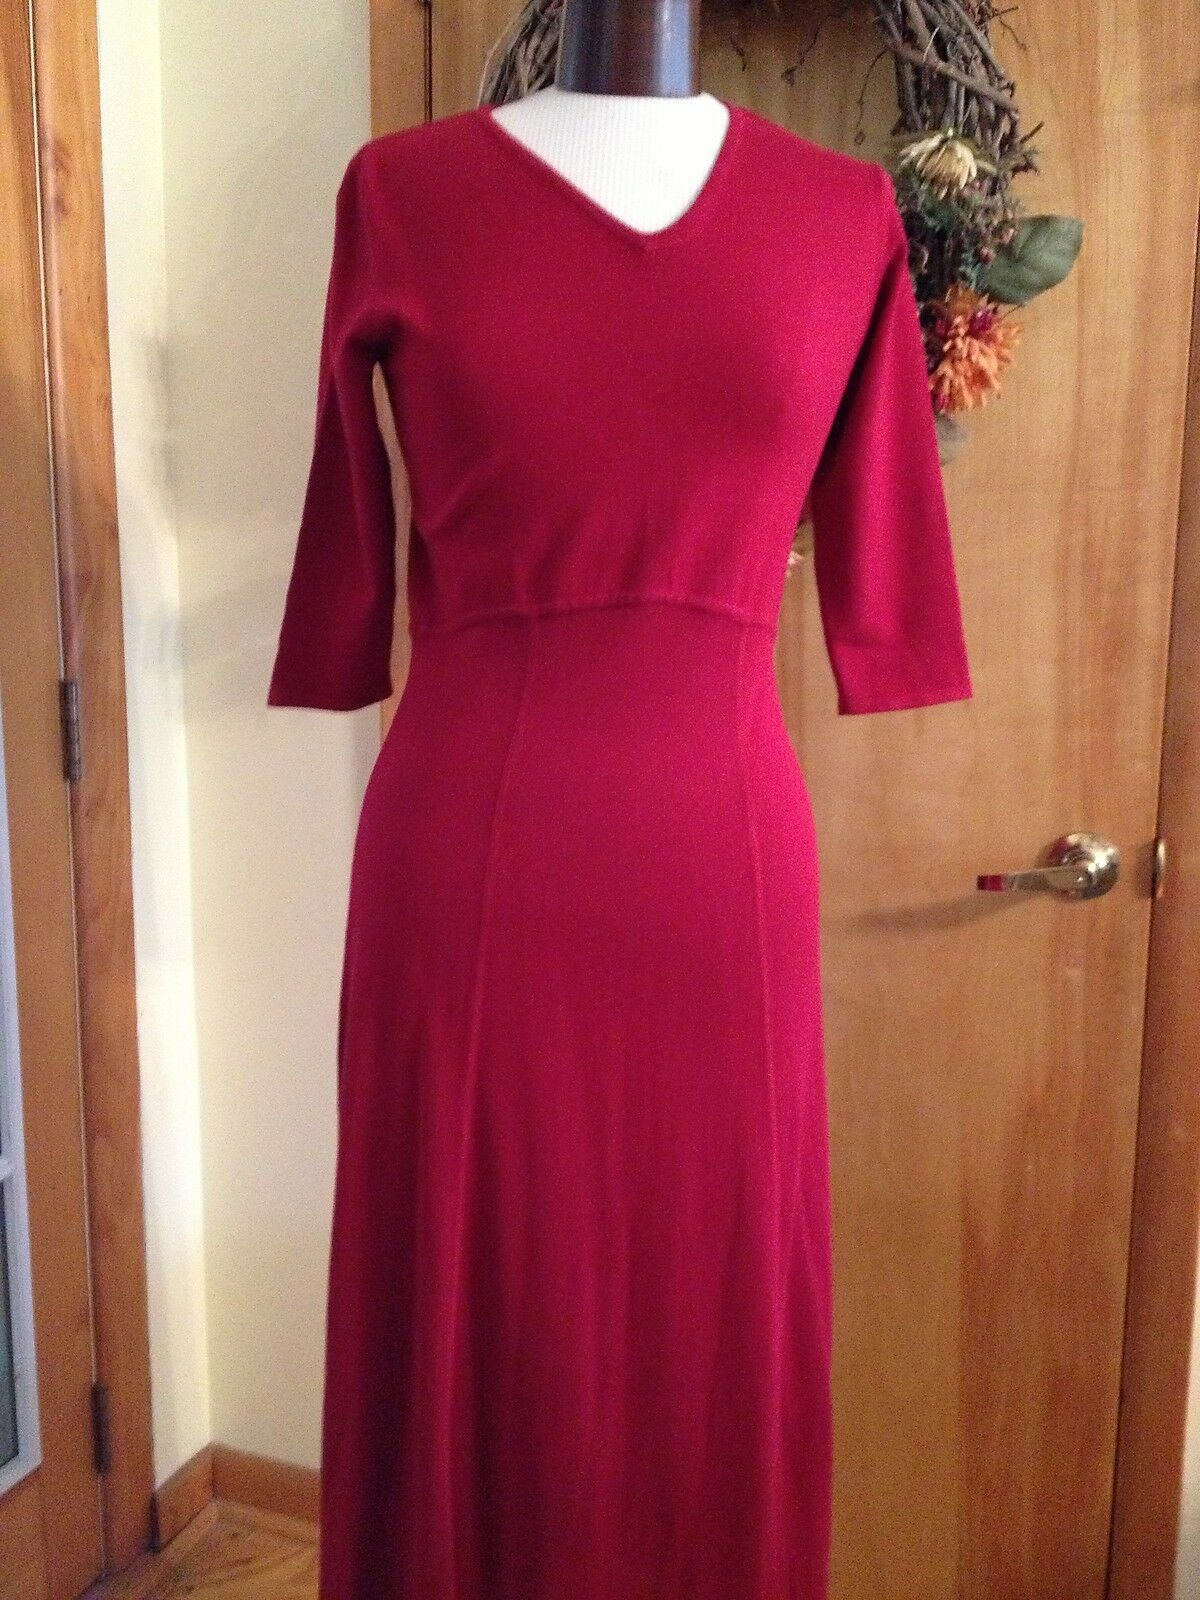 Norm Thompson Women's Dress Petite Knit Red Long 3 4 Sleeve Size P Small